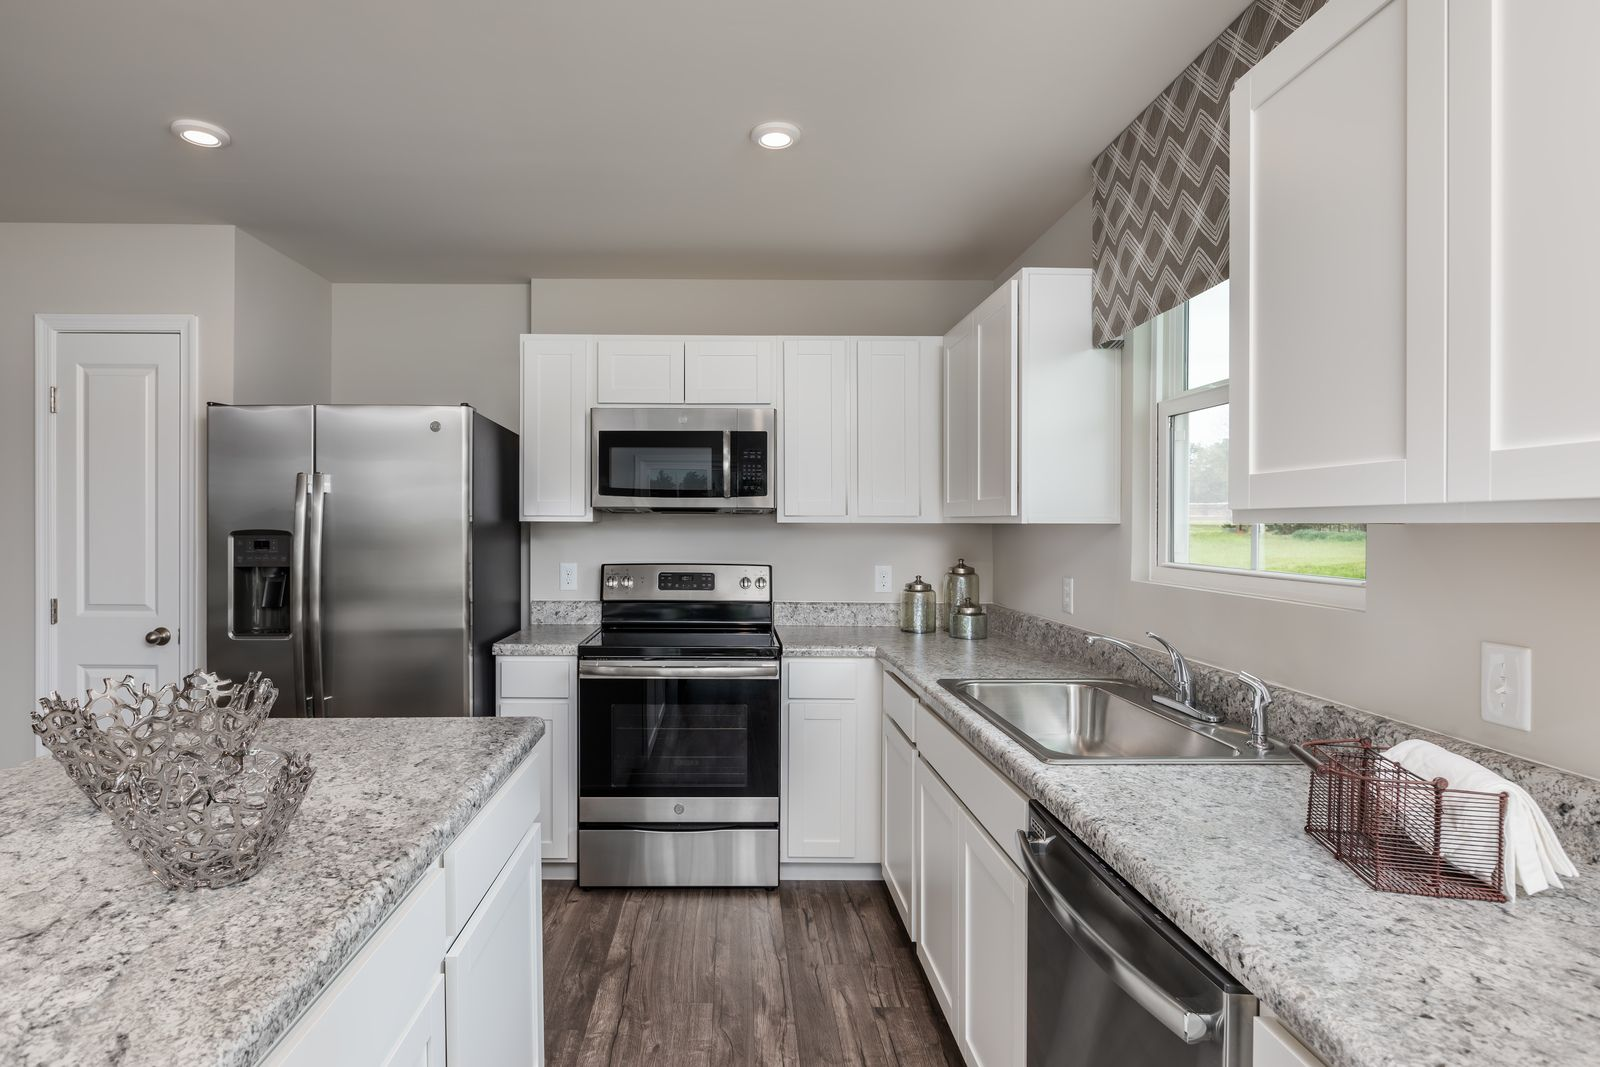 Kitchen featured in the Spruce w/ Included Basement By Ryan Homes in Cincinnati, OH